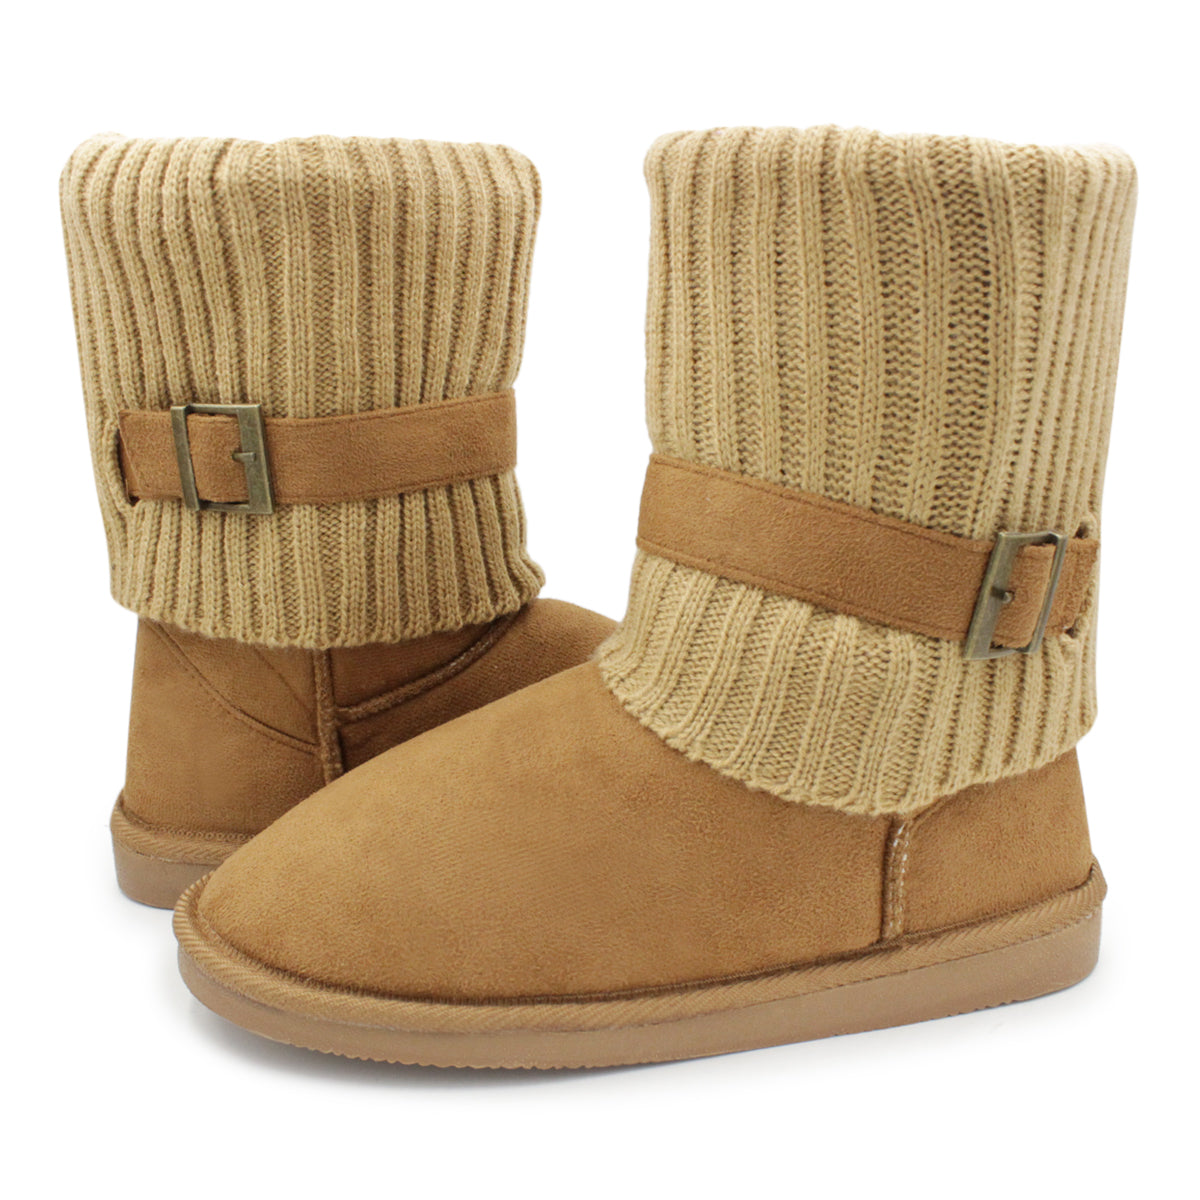 Women's Warm Winter Knit Fold Over Suede Ankle Boots with Buckle